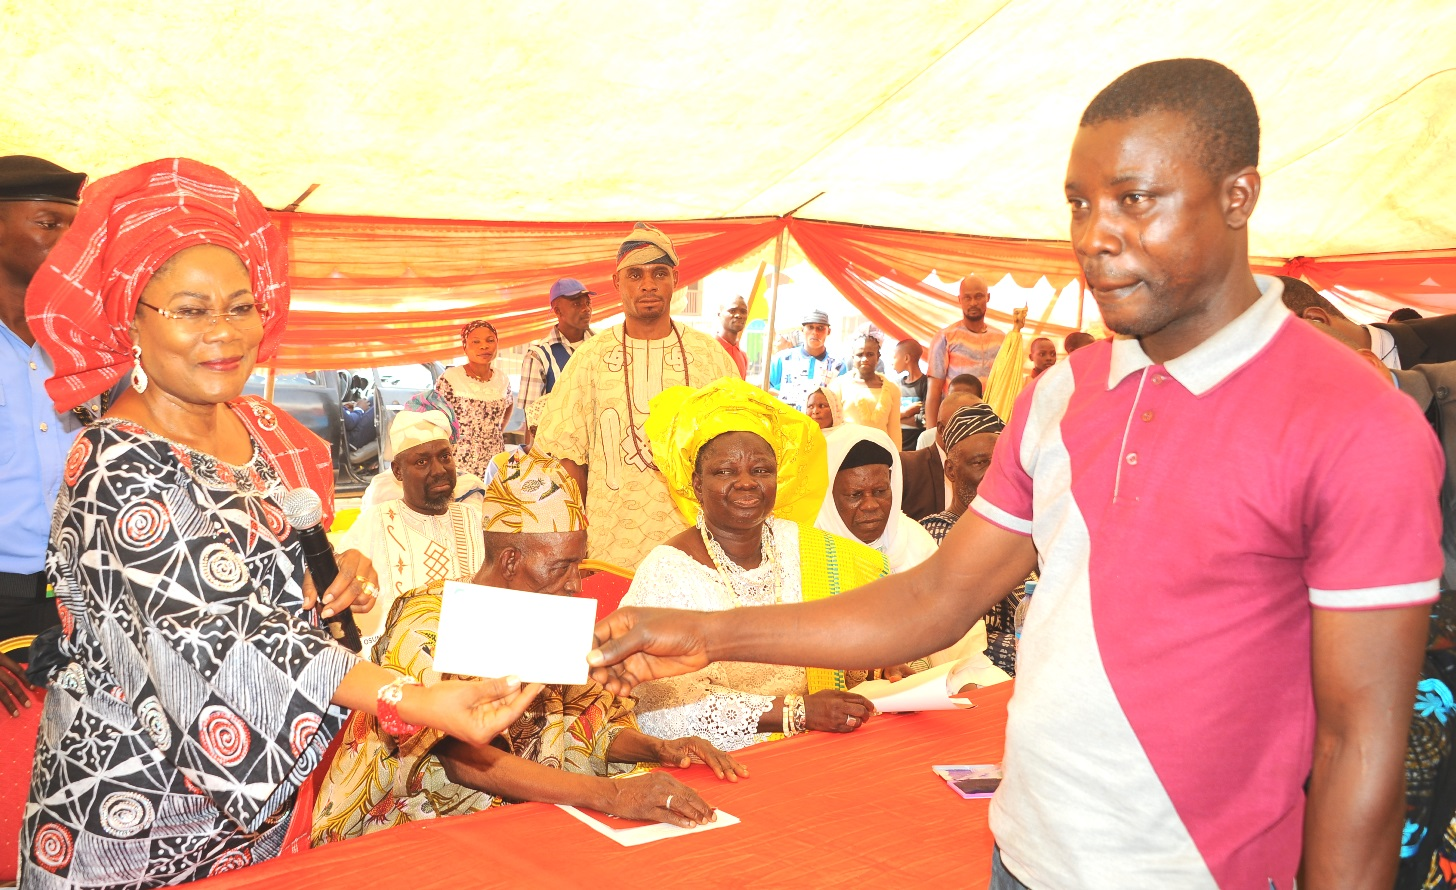 Governor State of Osun, Ogbeni Rauf Aregbesola, Represented by his Deputy, Mrs Titi Laoye-Tomori, presenting the Compensation Check to Mr Busari Saheed, during the Payment of Compensation to the people affected by the Reconstruction of Orita Olaiya, Asubiaro, Isale-Osun and Ita Olookan Road, Osogbo By Ogbeni, at Laro-Timehin Middle School Isale Osun on Wednesday 16-12-2015.